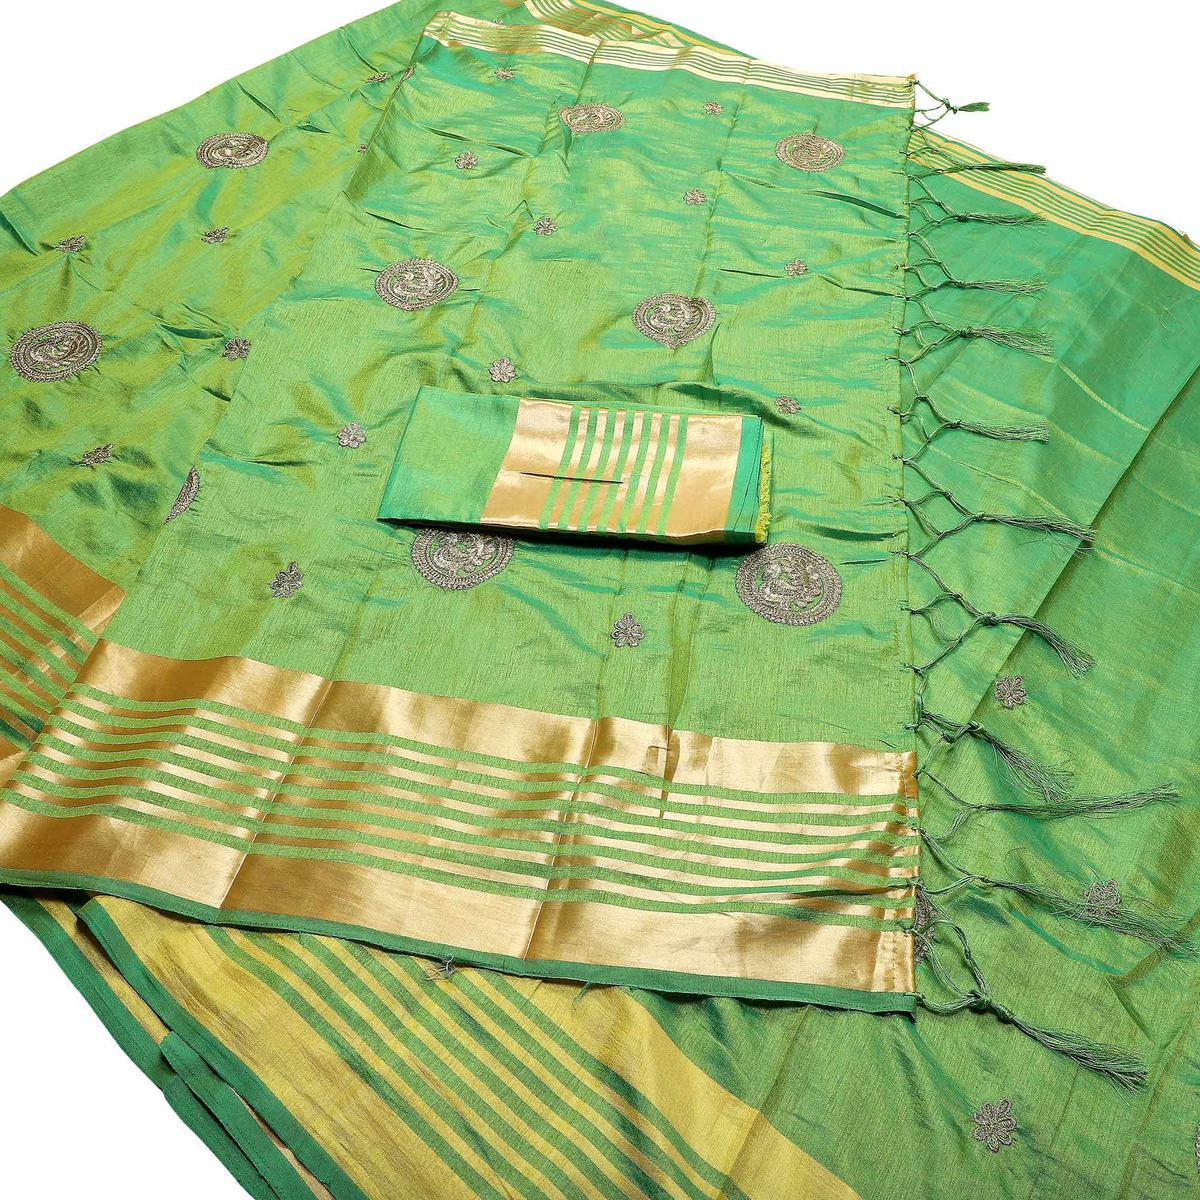 Entrancing Green Colored Festive Wear Peacock Embroidered Banarasi Silk Saree With Tassels